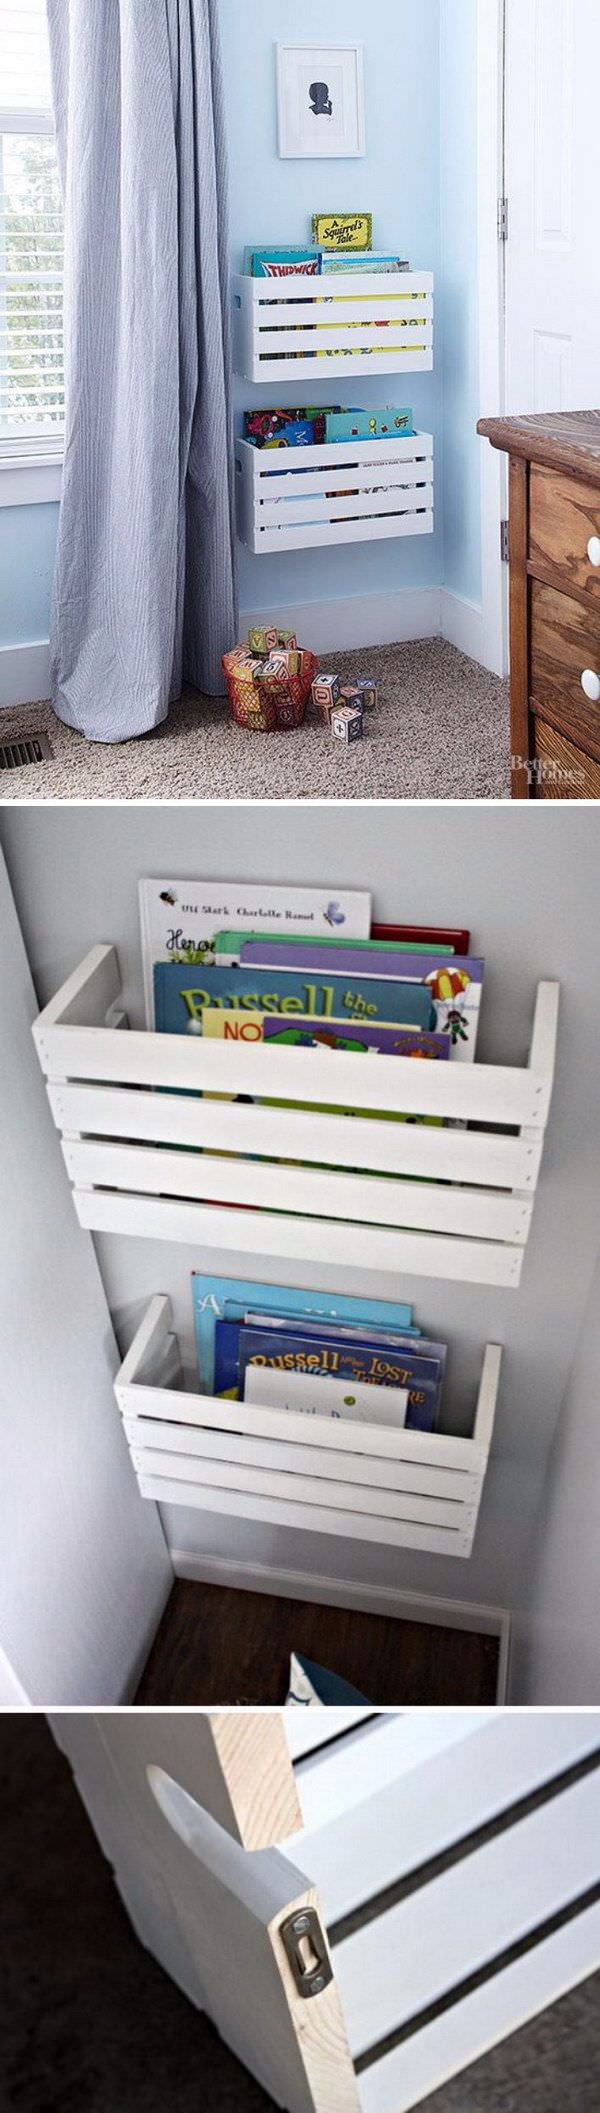 If you've children in your home, learn a few of these TOY STORAGE IDEAS to keep their favorite playthings at a proper place!